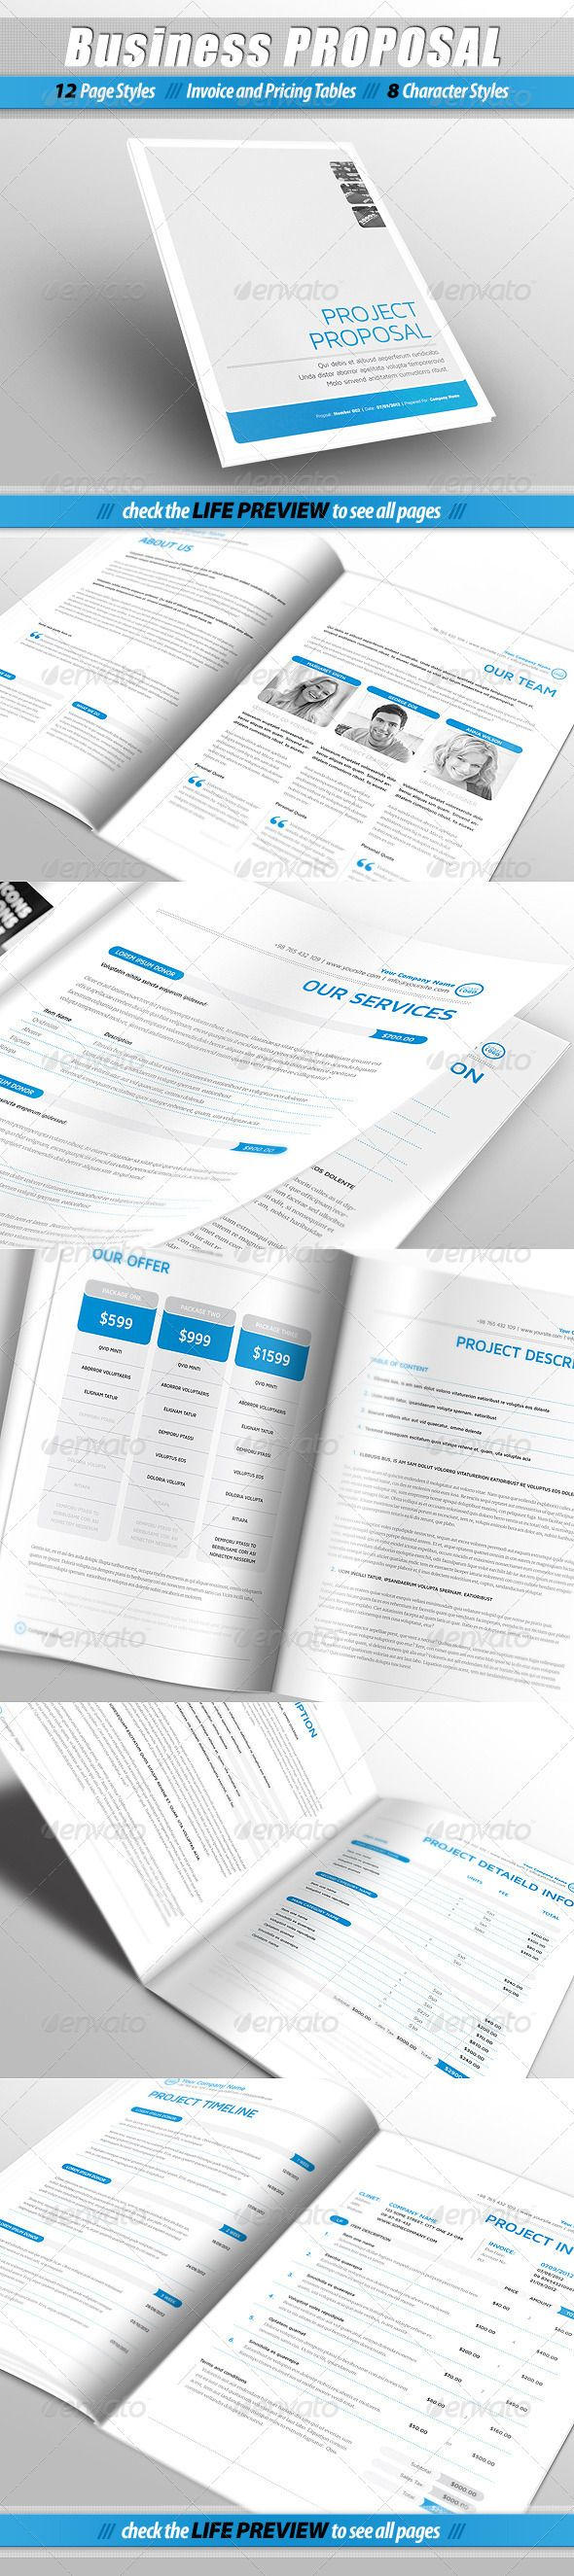 Business PROPOSAL - Proposals  Invoices Stationery